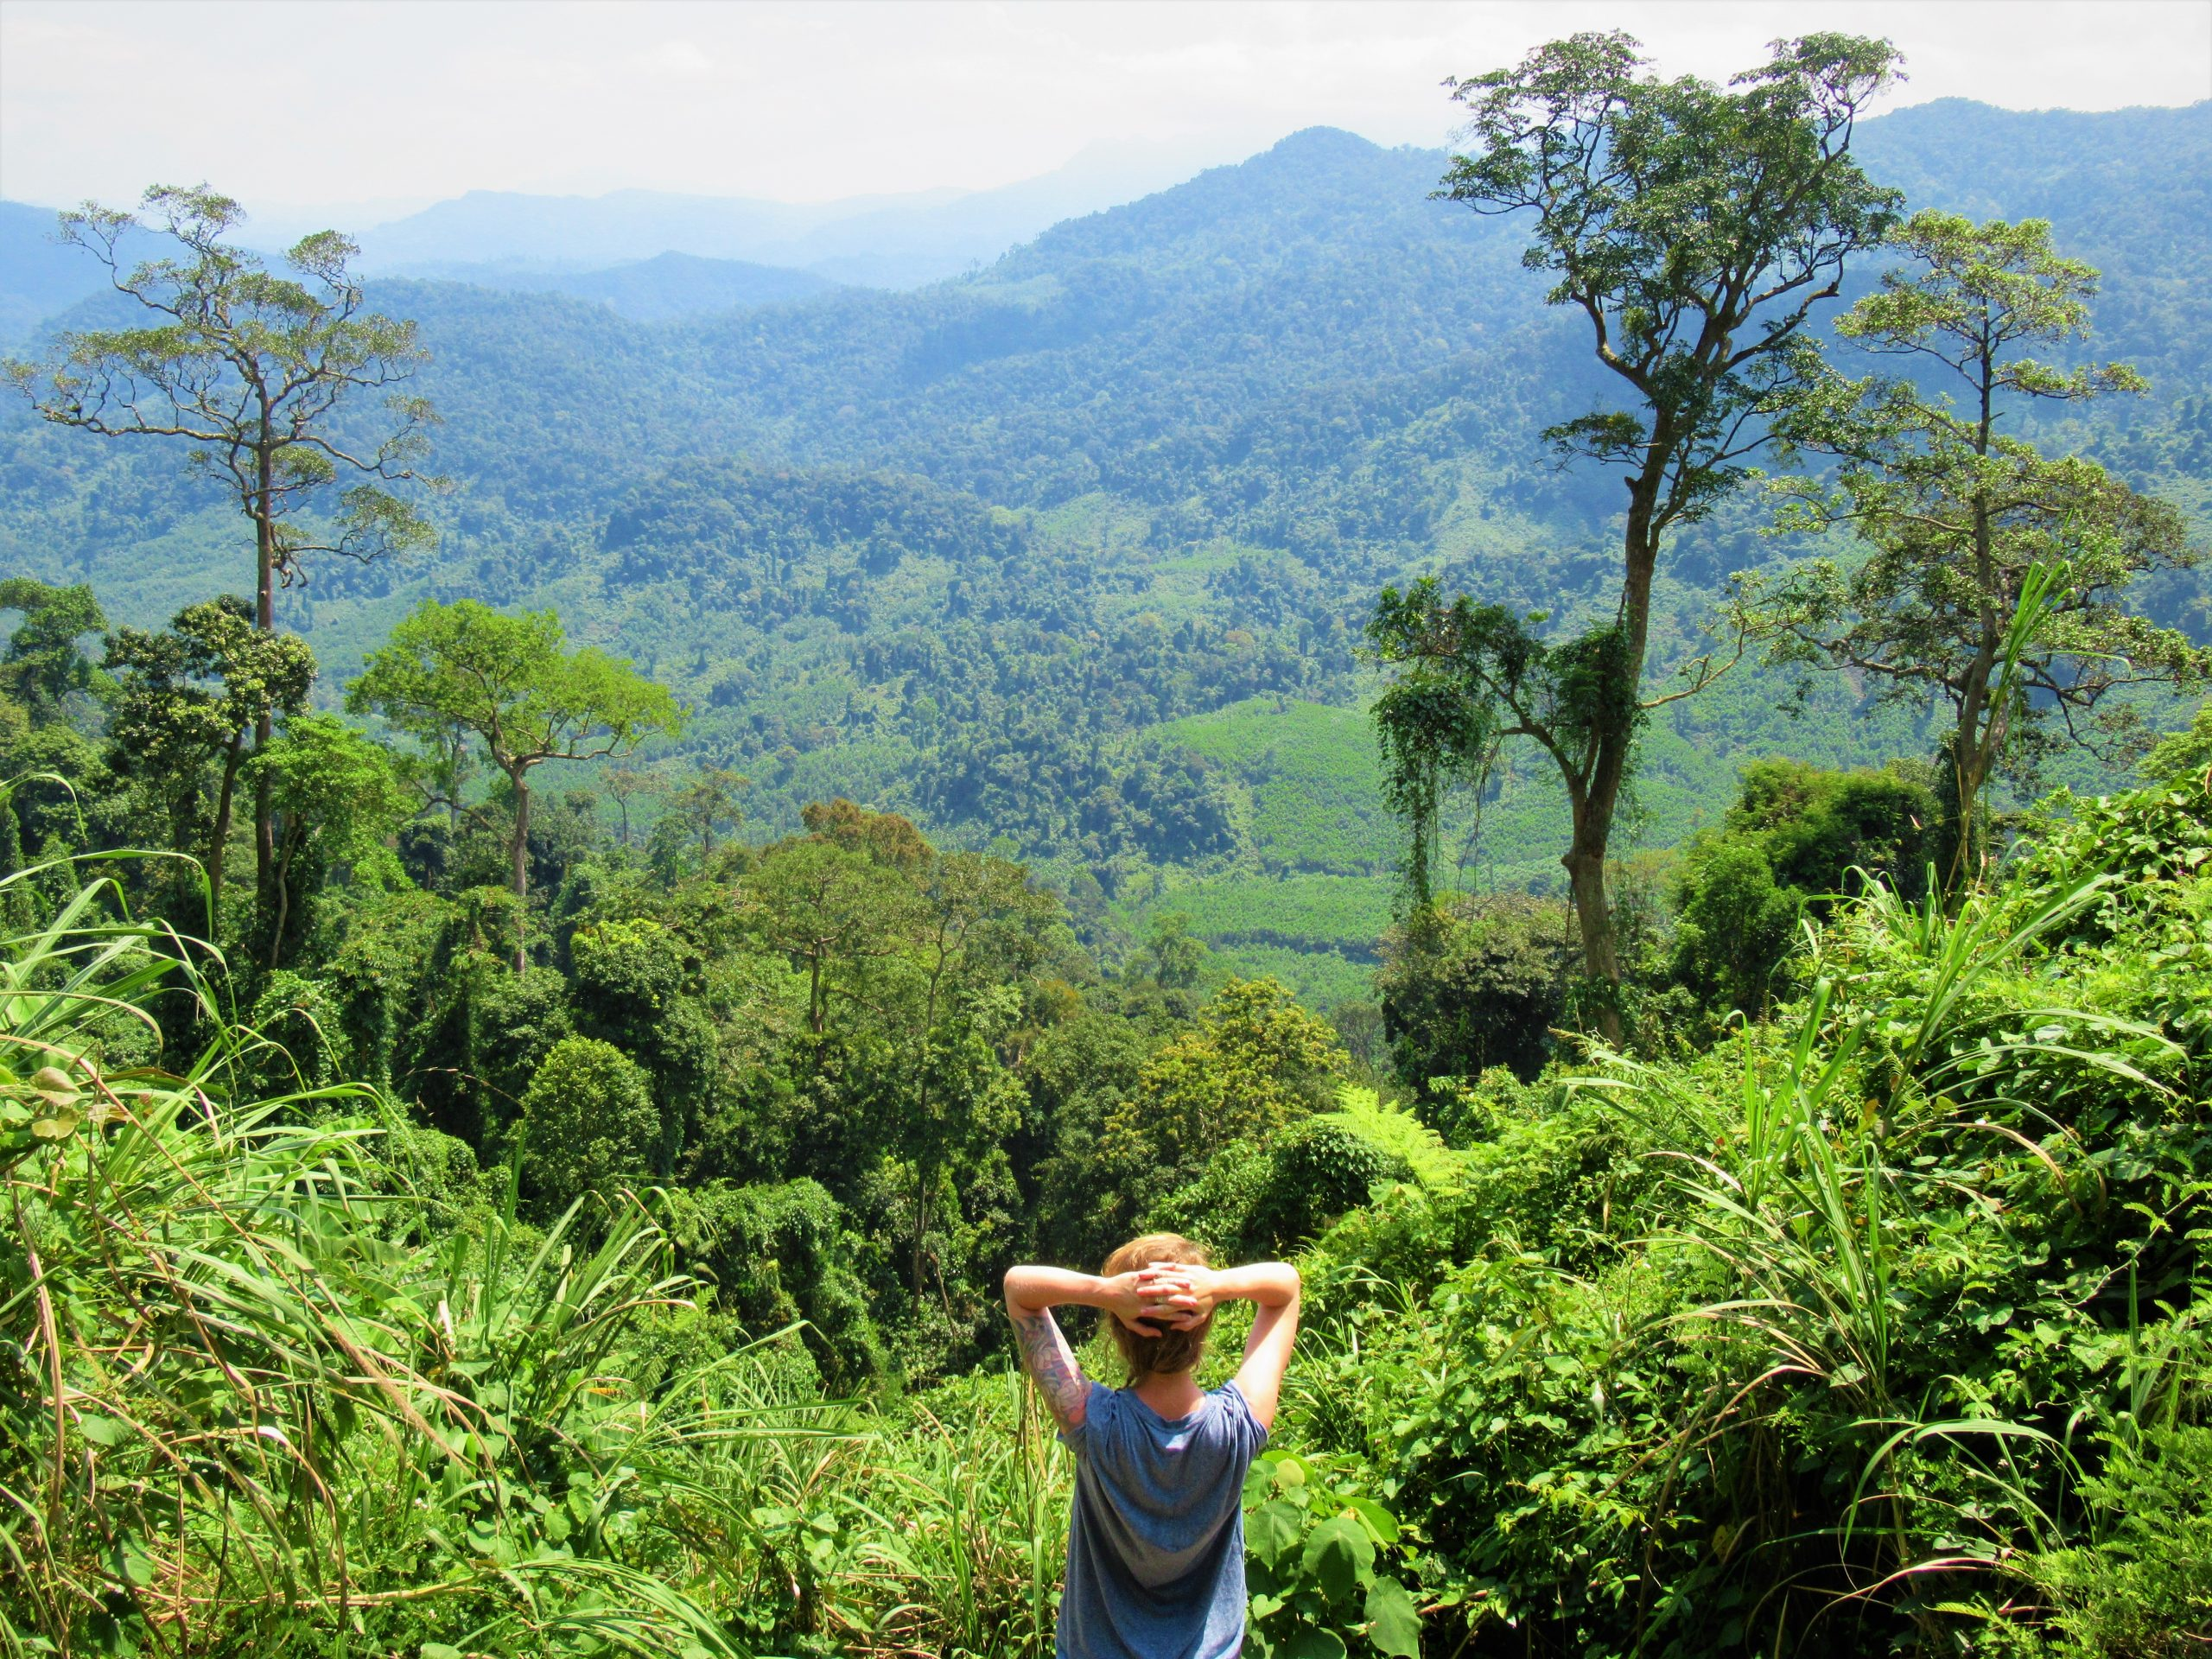 Taking in the views on the Ho Chi Minh West is Best Loop, Central Vietnam